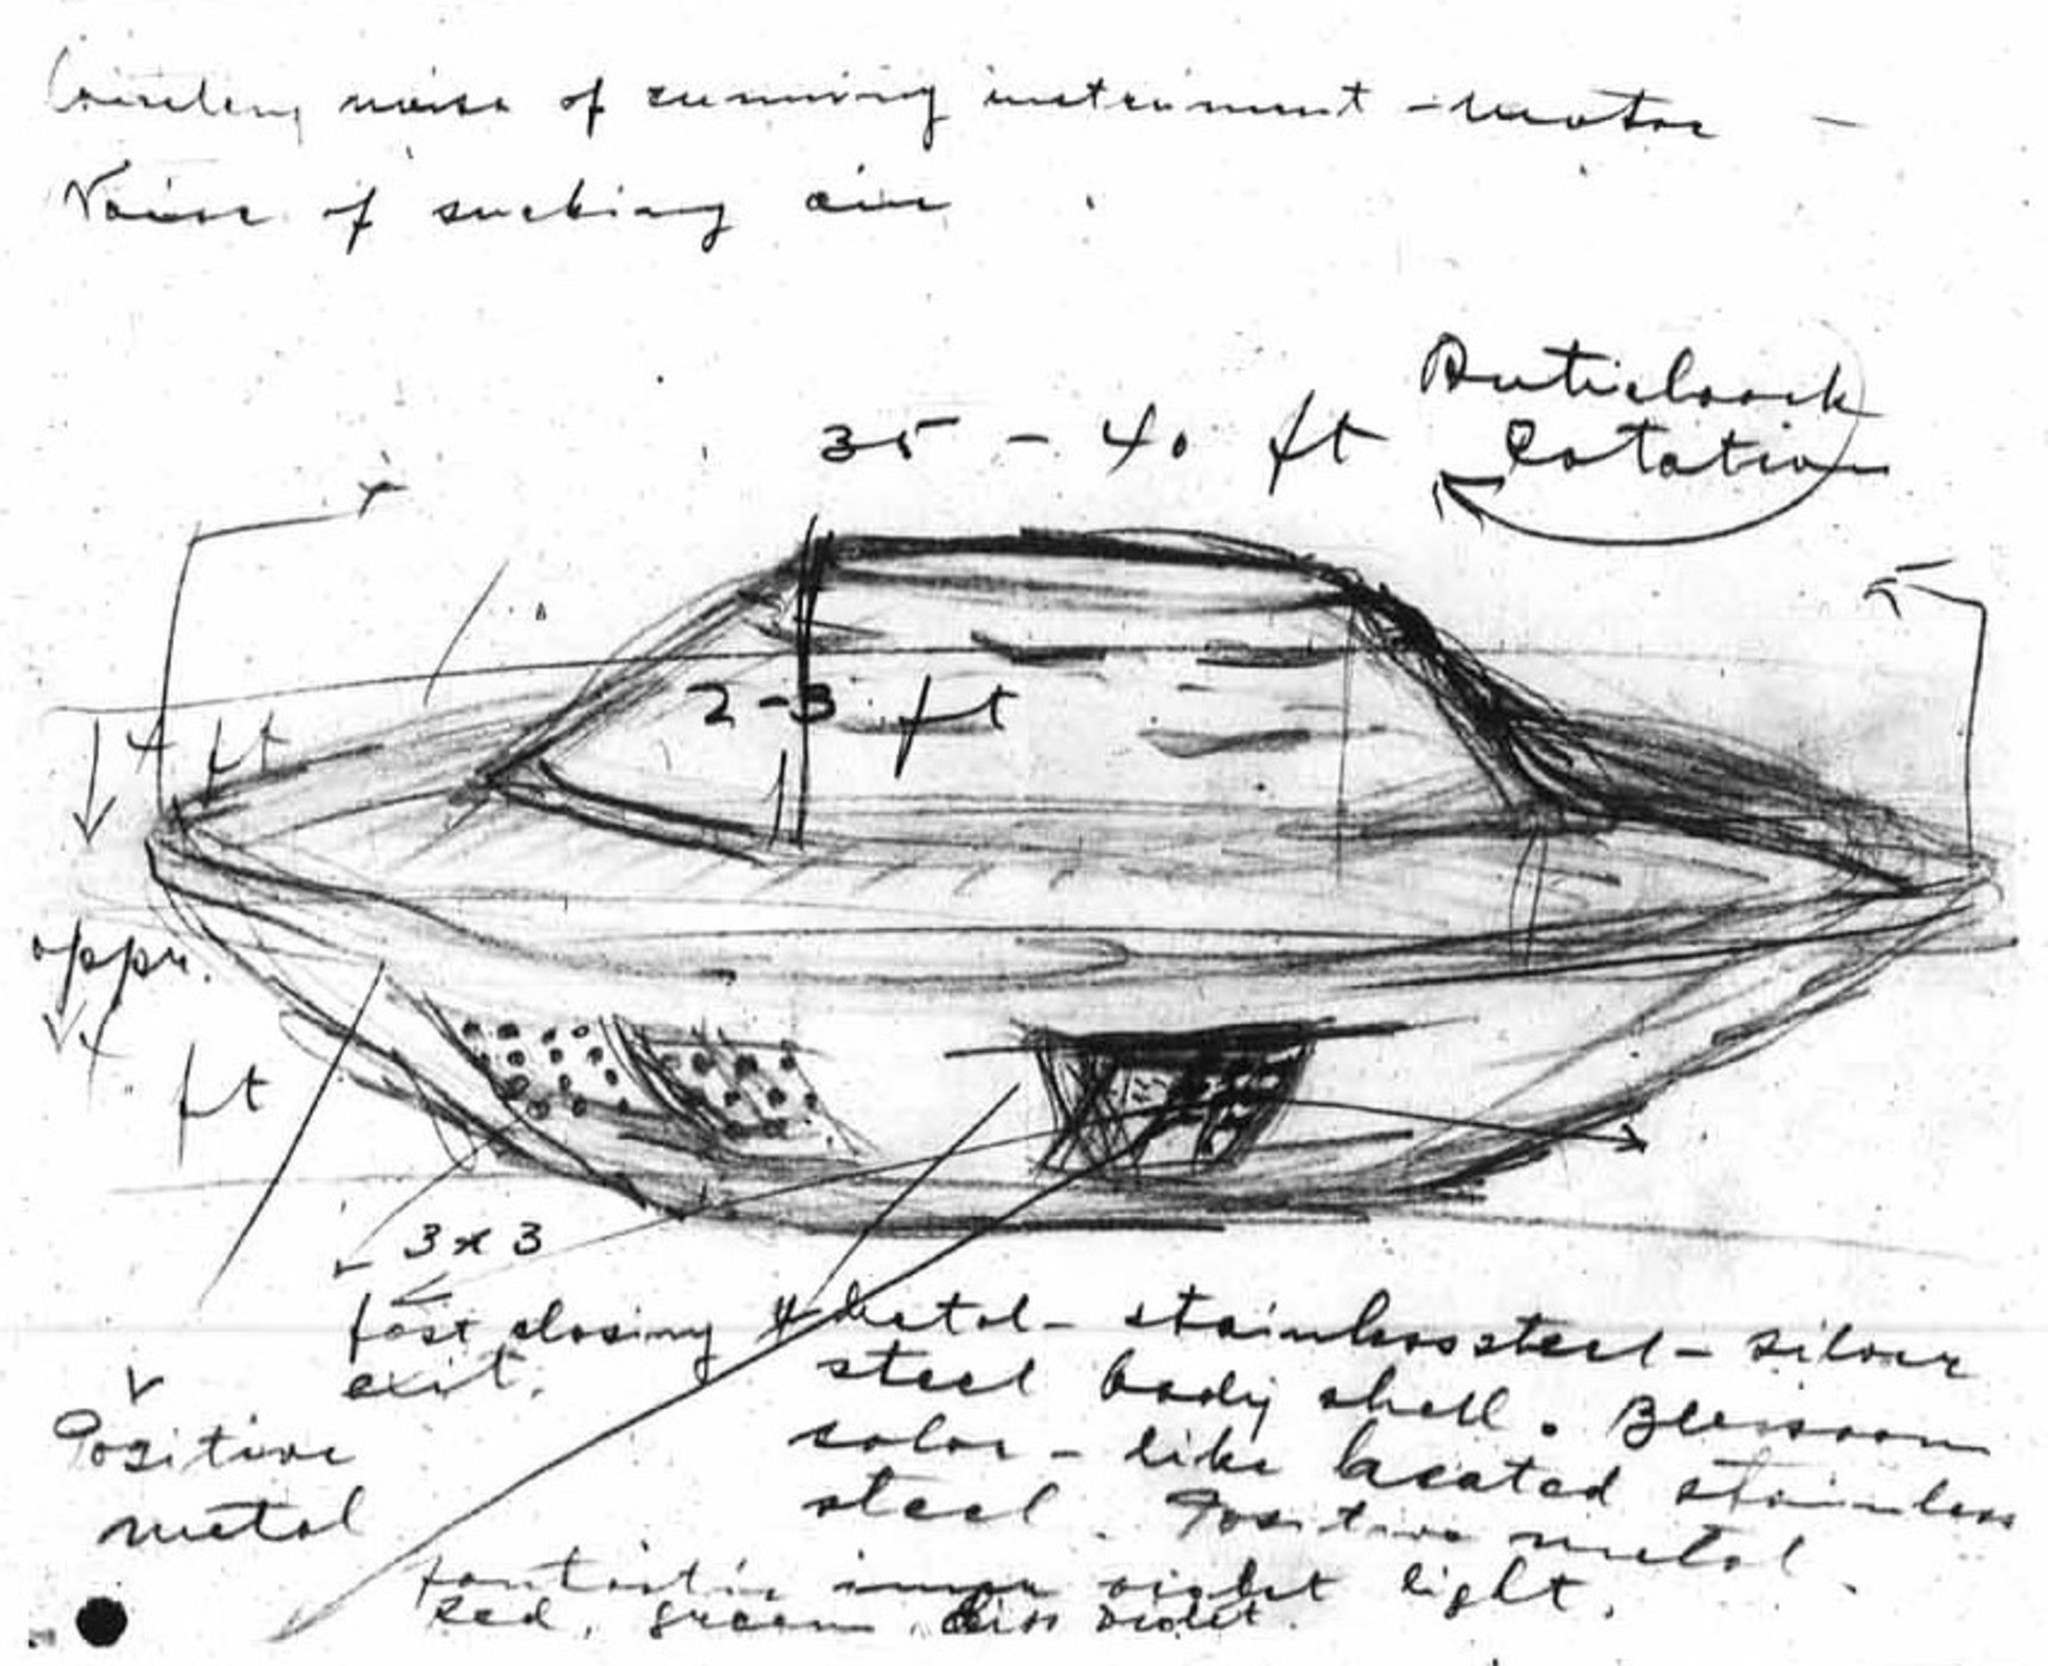 Sketch made by Stefan Michalak after witnessing an unidentified flying object in 1967. It&rsquo;s now widely known as the Falcon Lake Incident.</p></p>